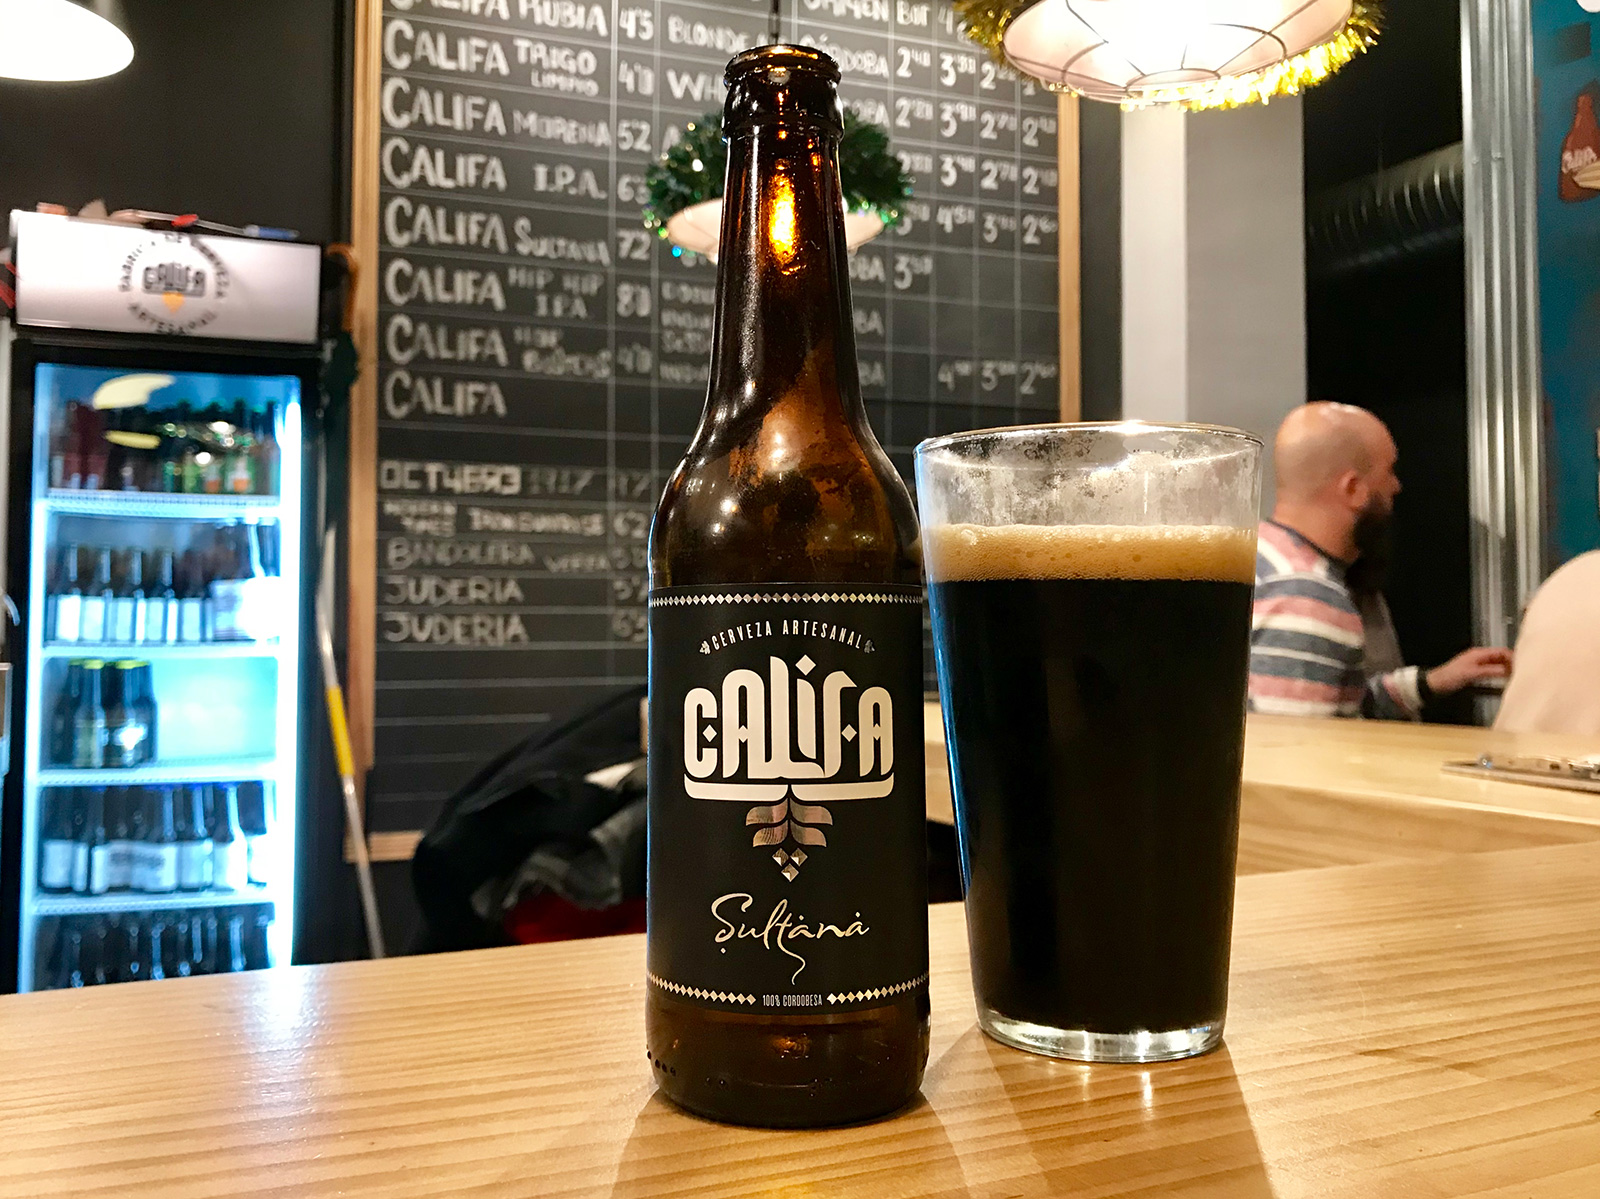 Cervezas Califa in Cordoba, Spain by Jets Like Taxis / Hopsmash